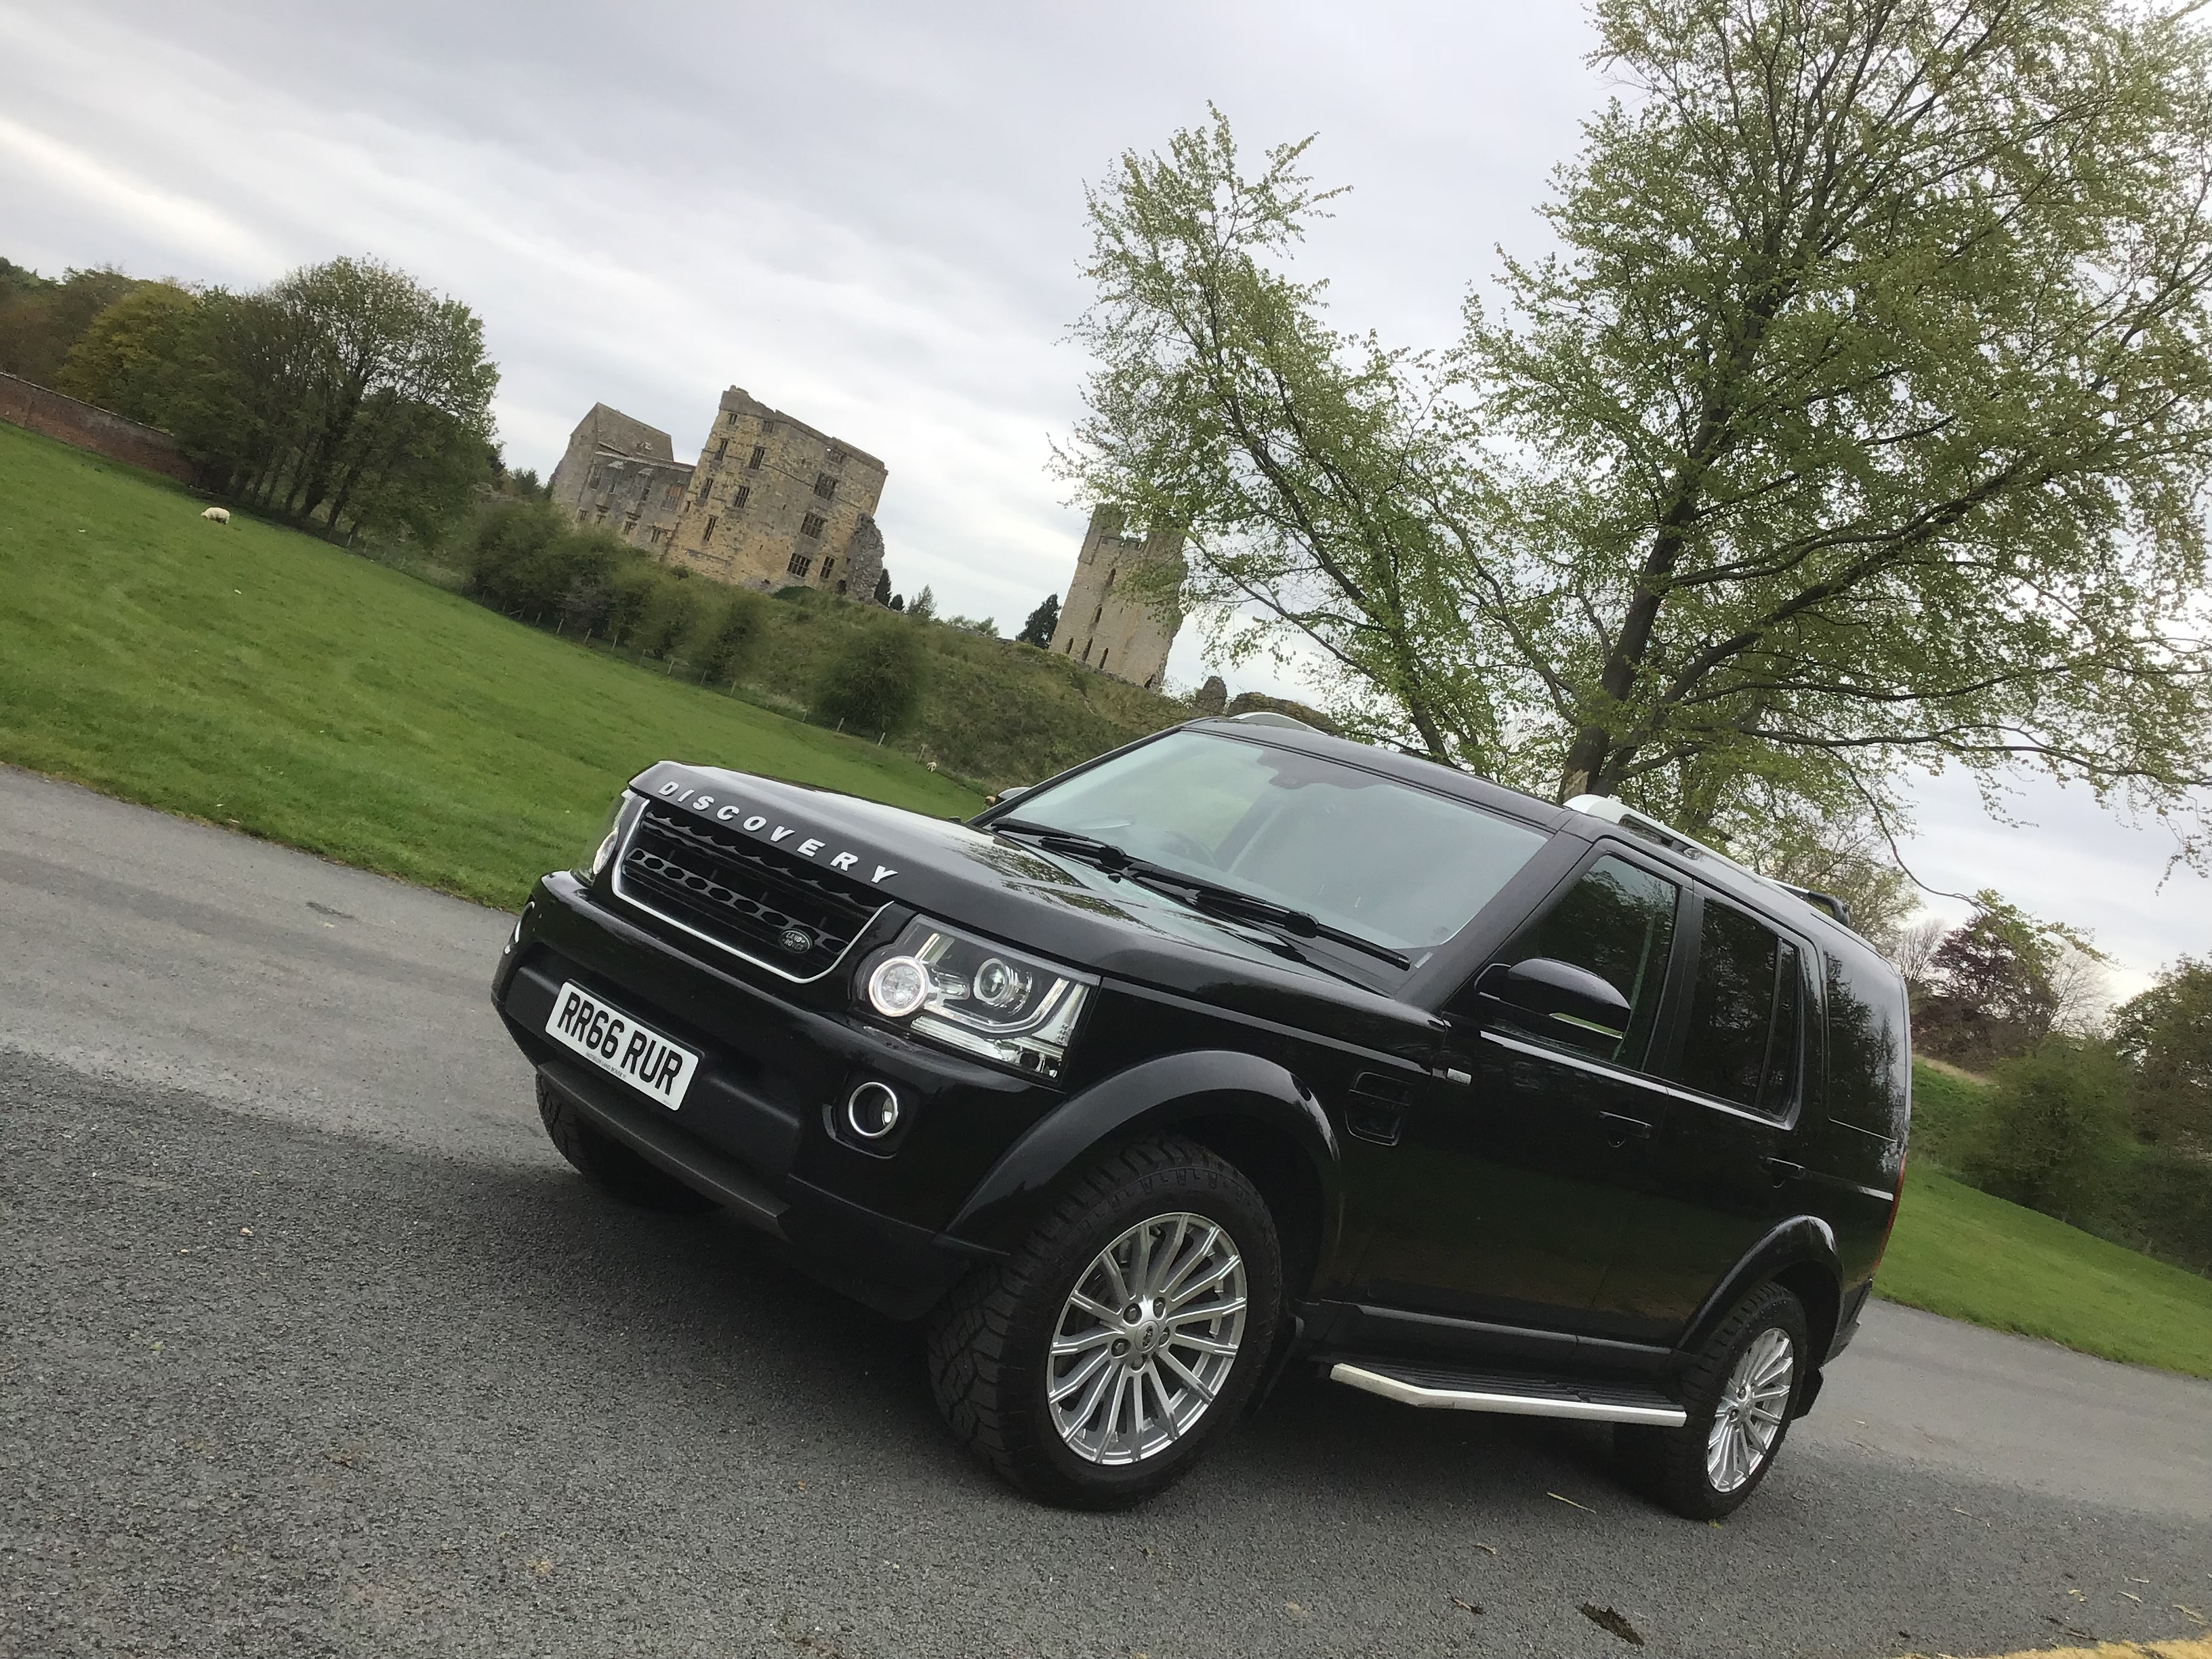 Landrover Discovery at Duncombe Park, Helmsley, North Yorkshire.